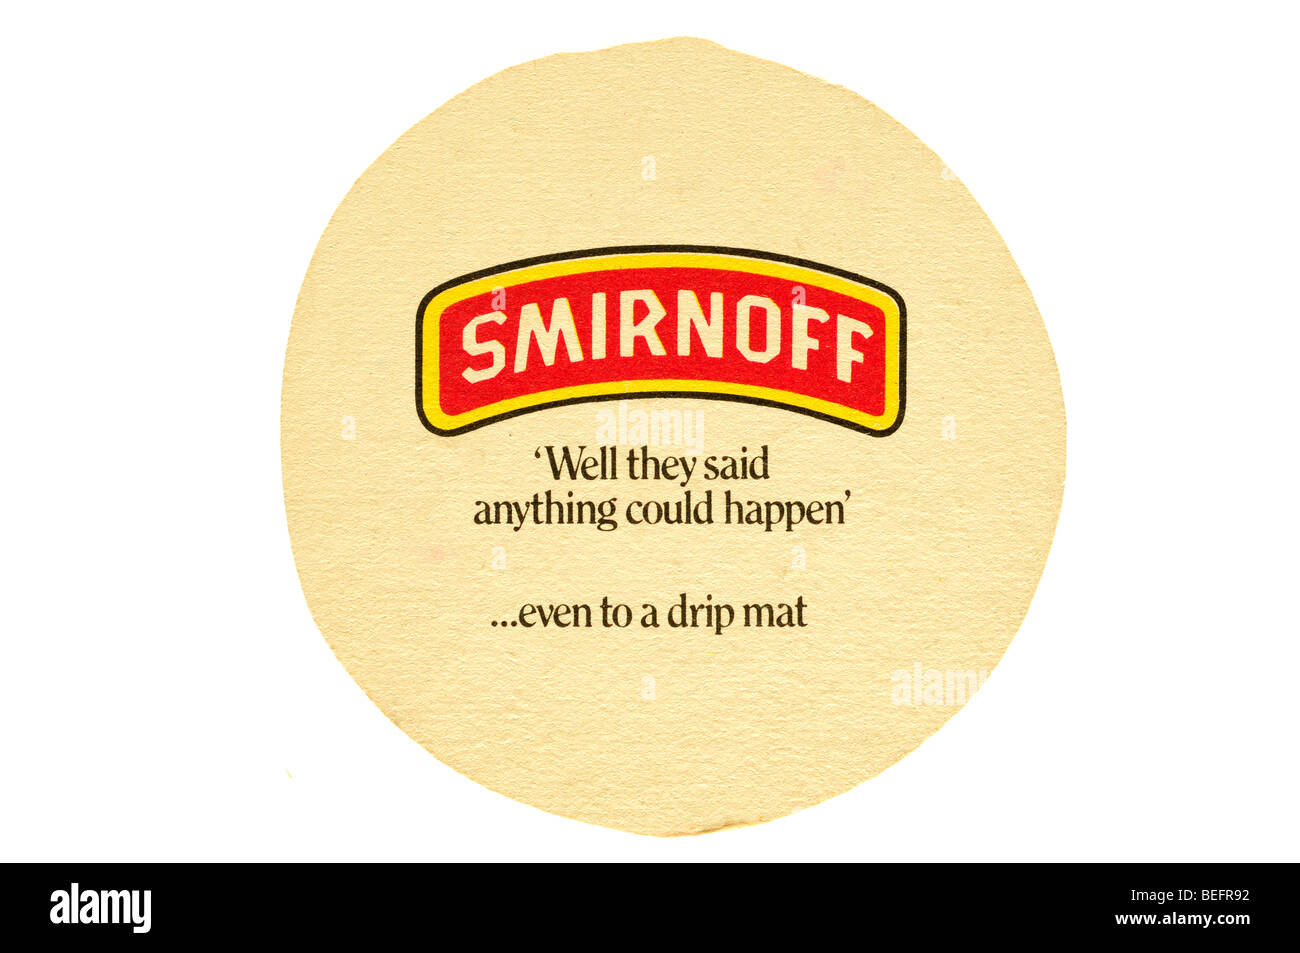 smirnoff well they said anything could happen even to a drip mat - Stock Image